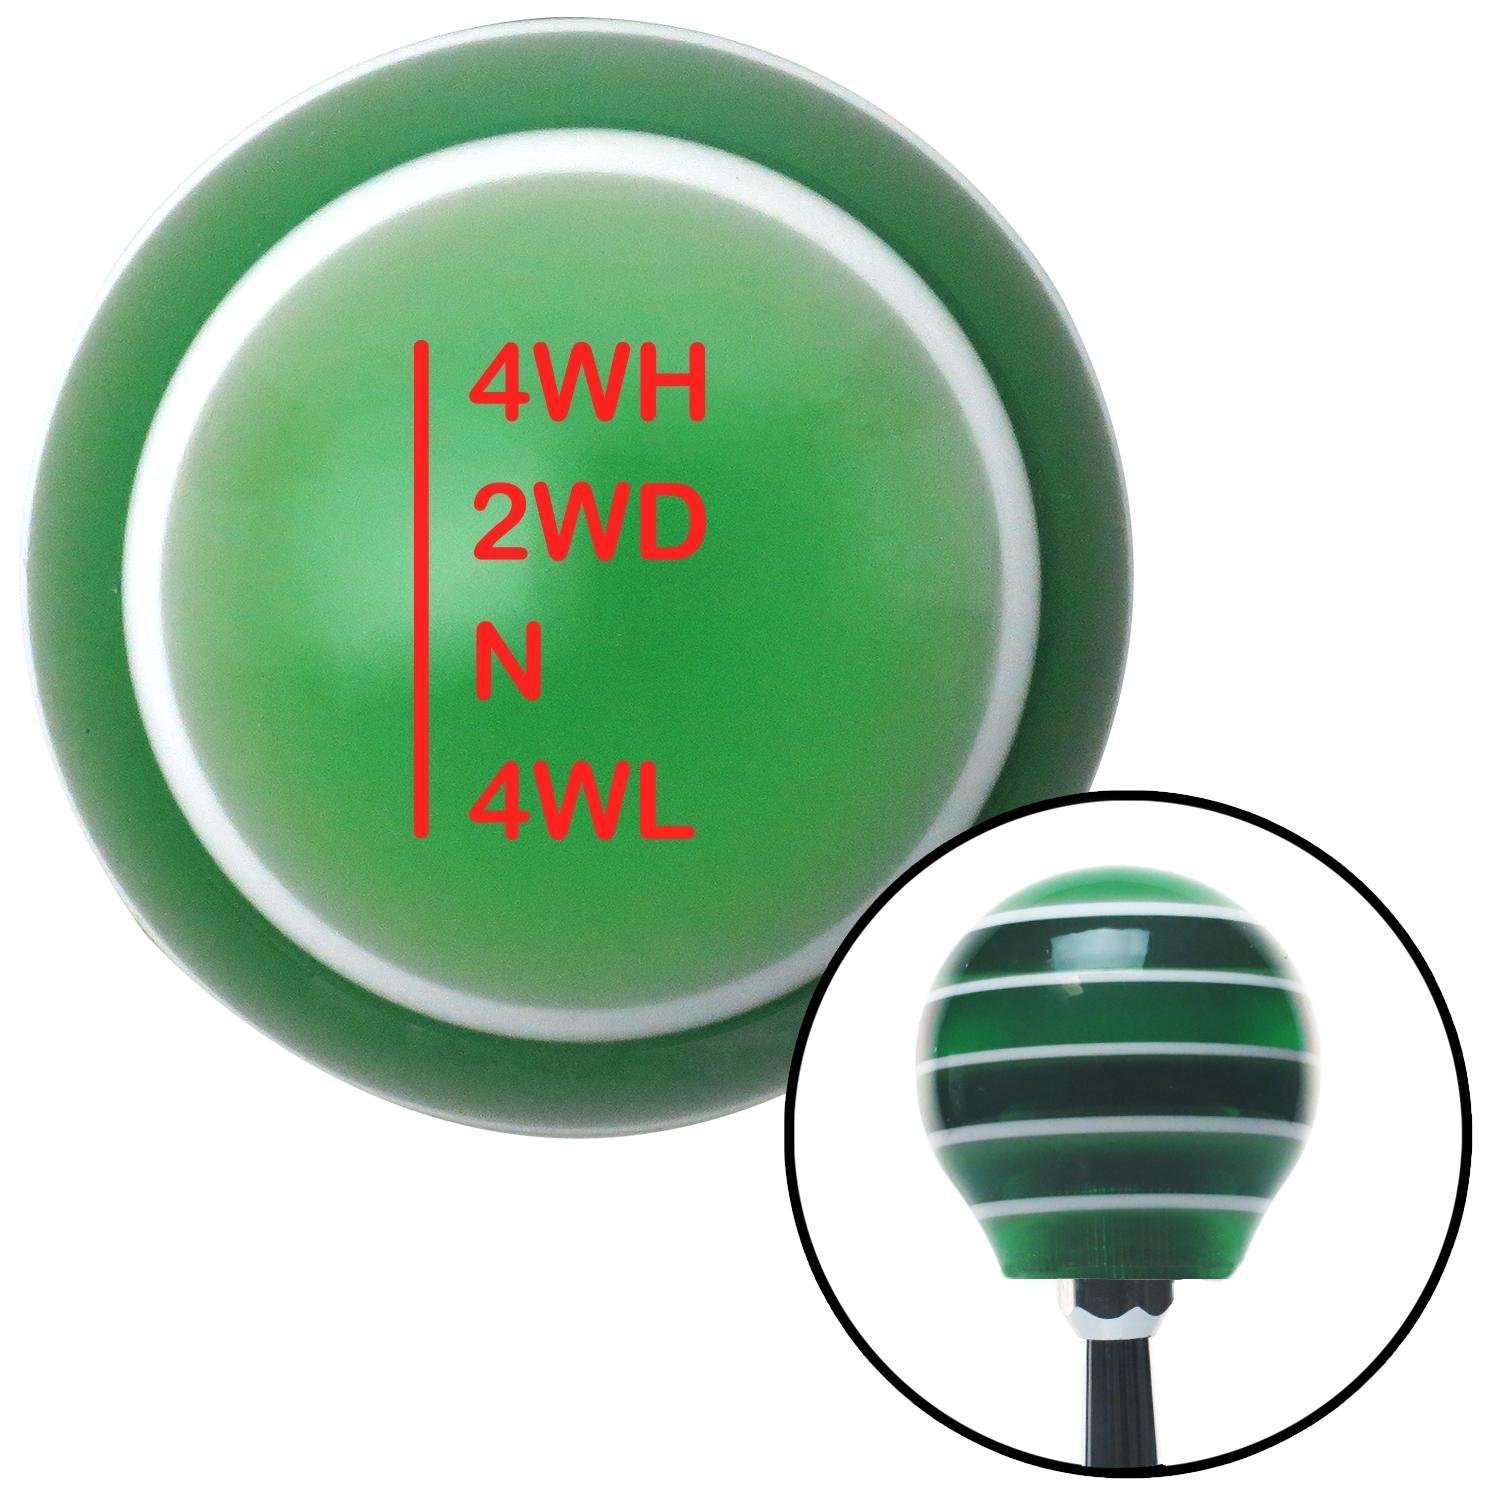 Red Shift Pattern 53n American Shifter 127270 Green Stripe Shift Knob with M16 x 1.5 Insert